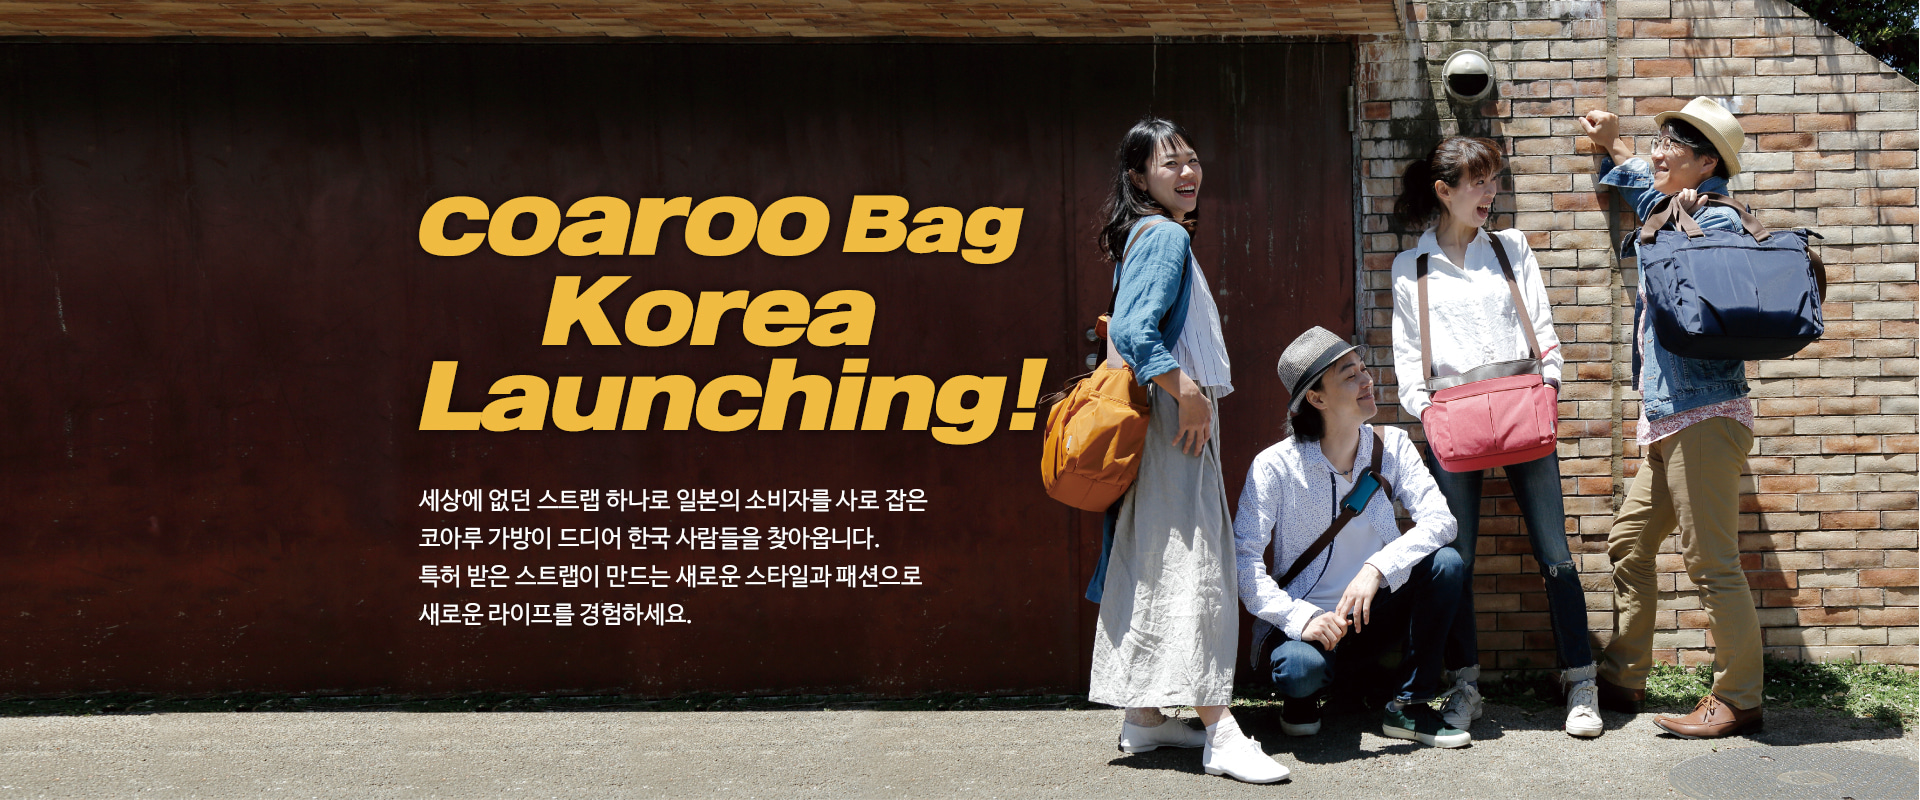 coaroo Bag Korea Launching!